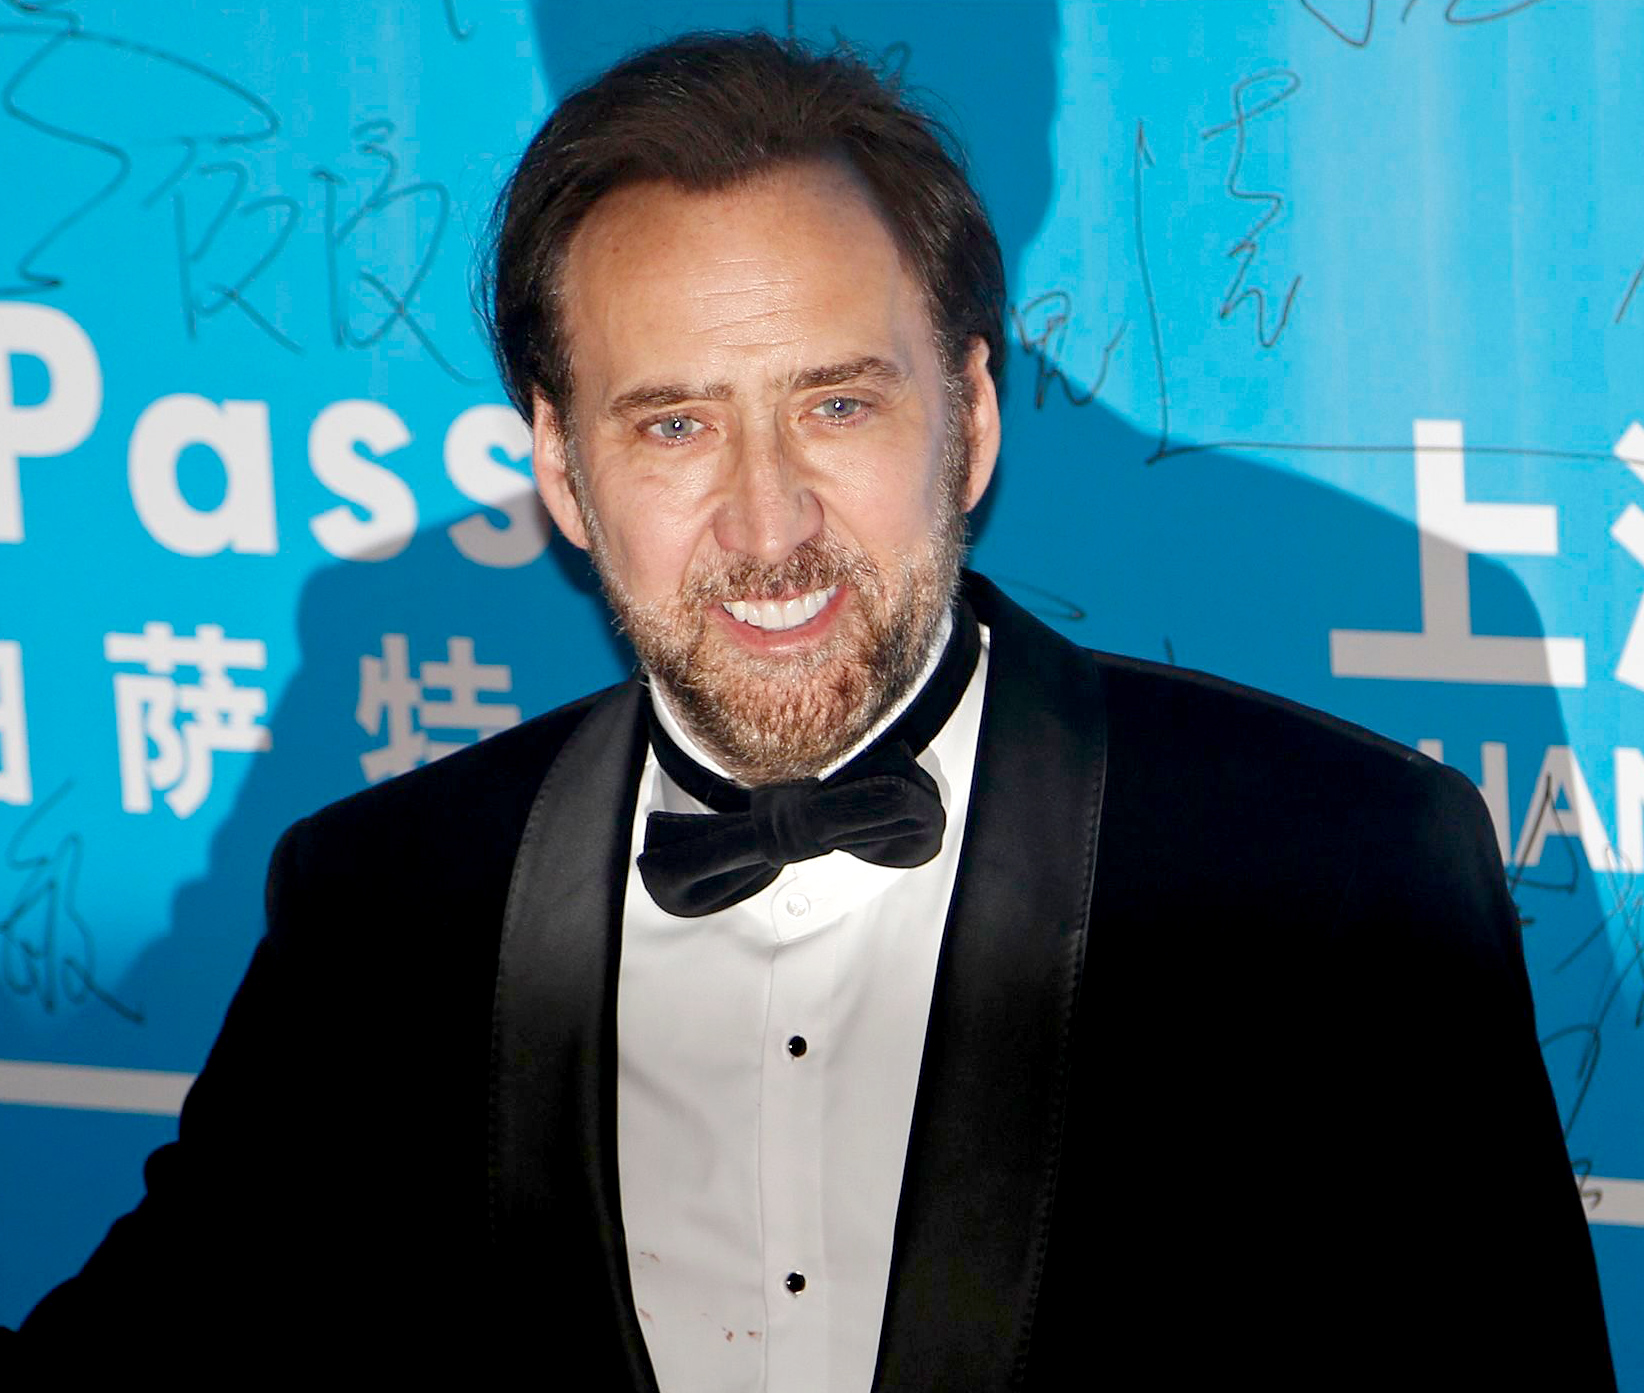 Nicholas Cage to Play Tiger King Joe Exoticv